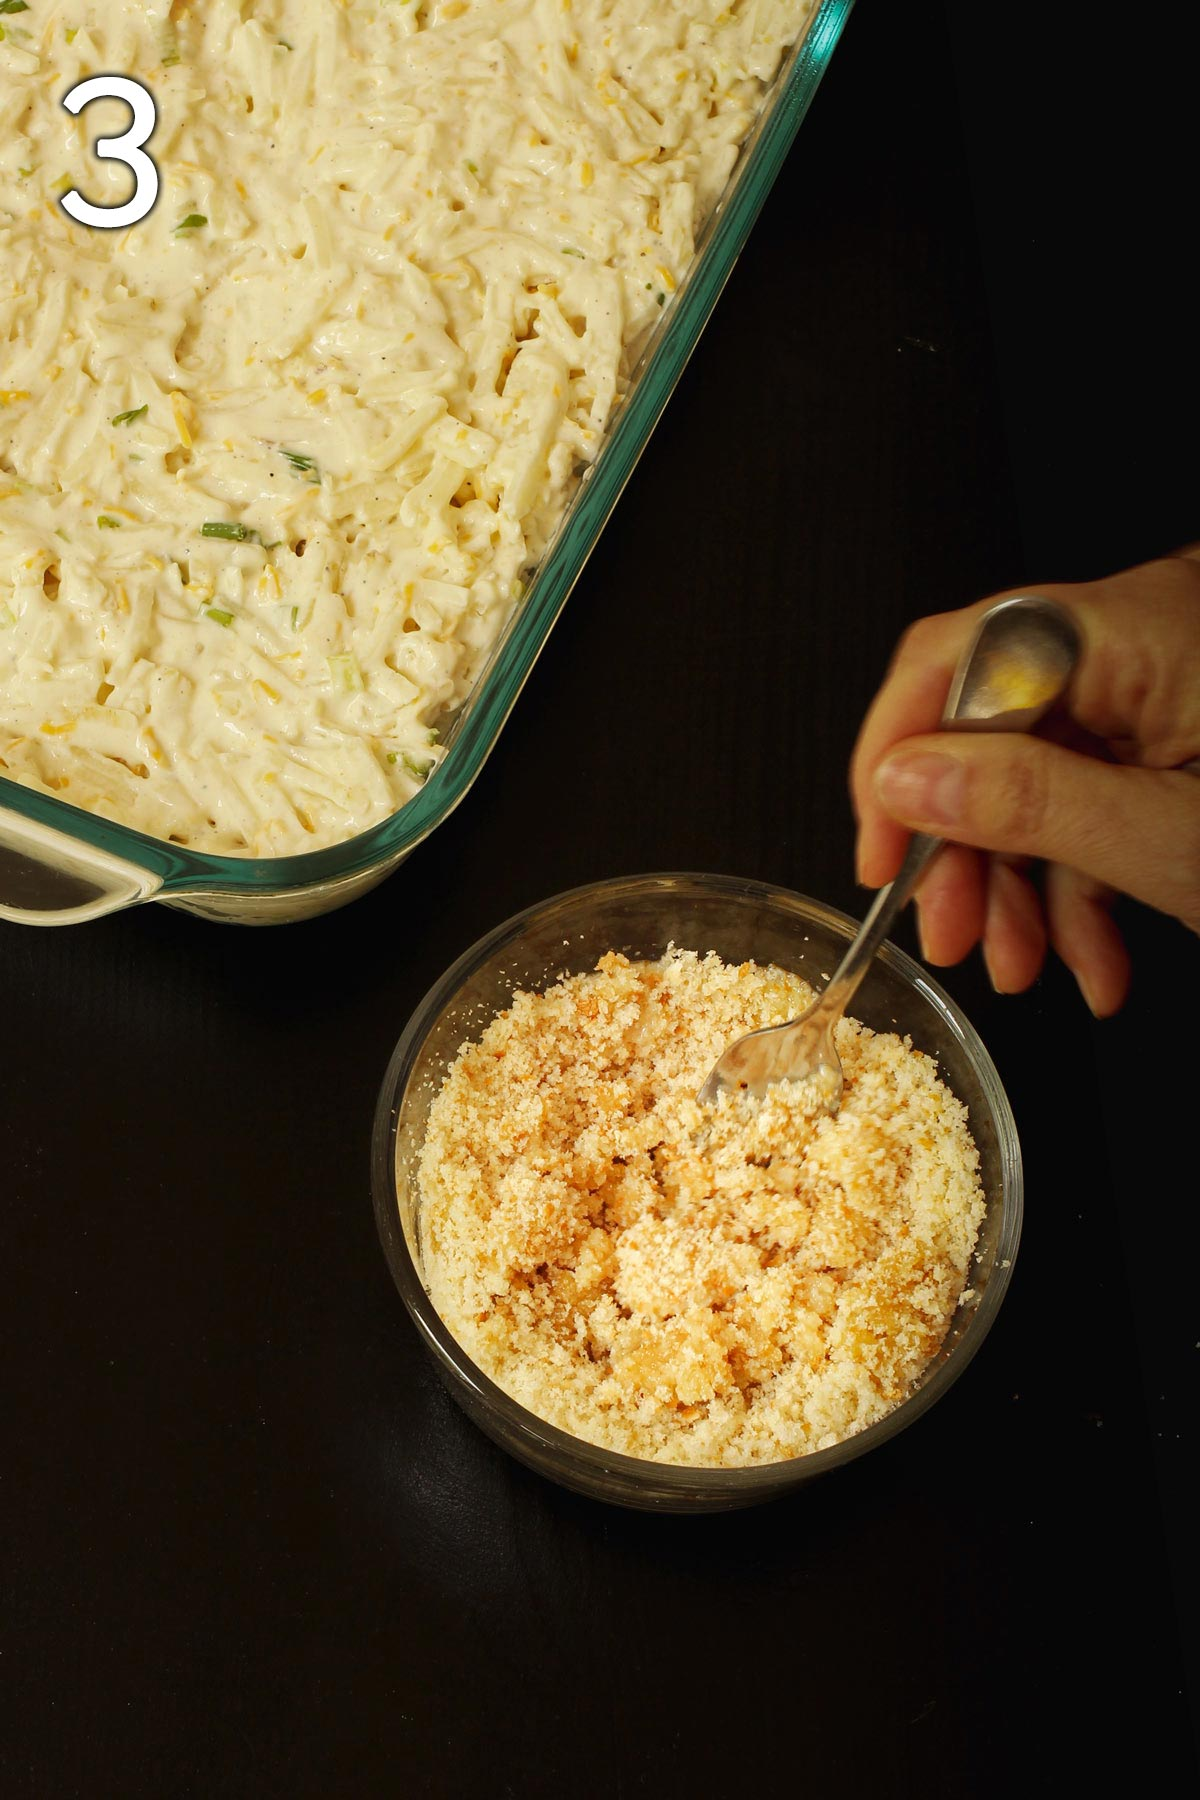 prepping the buttered bread crumbs in a small bowl.